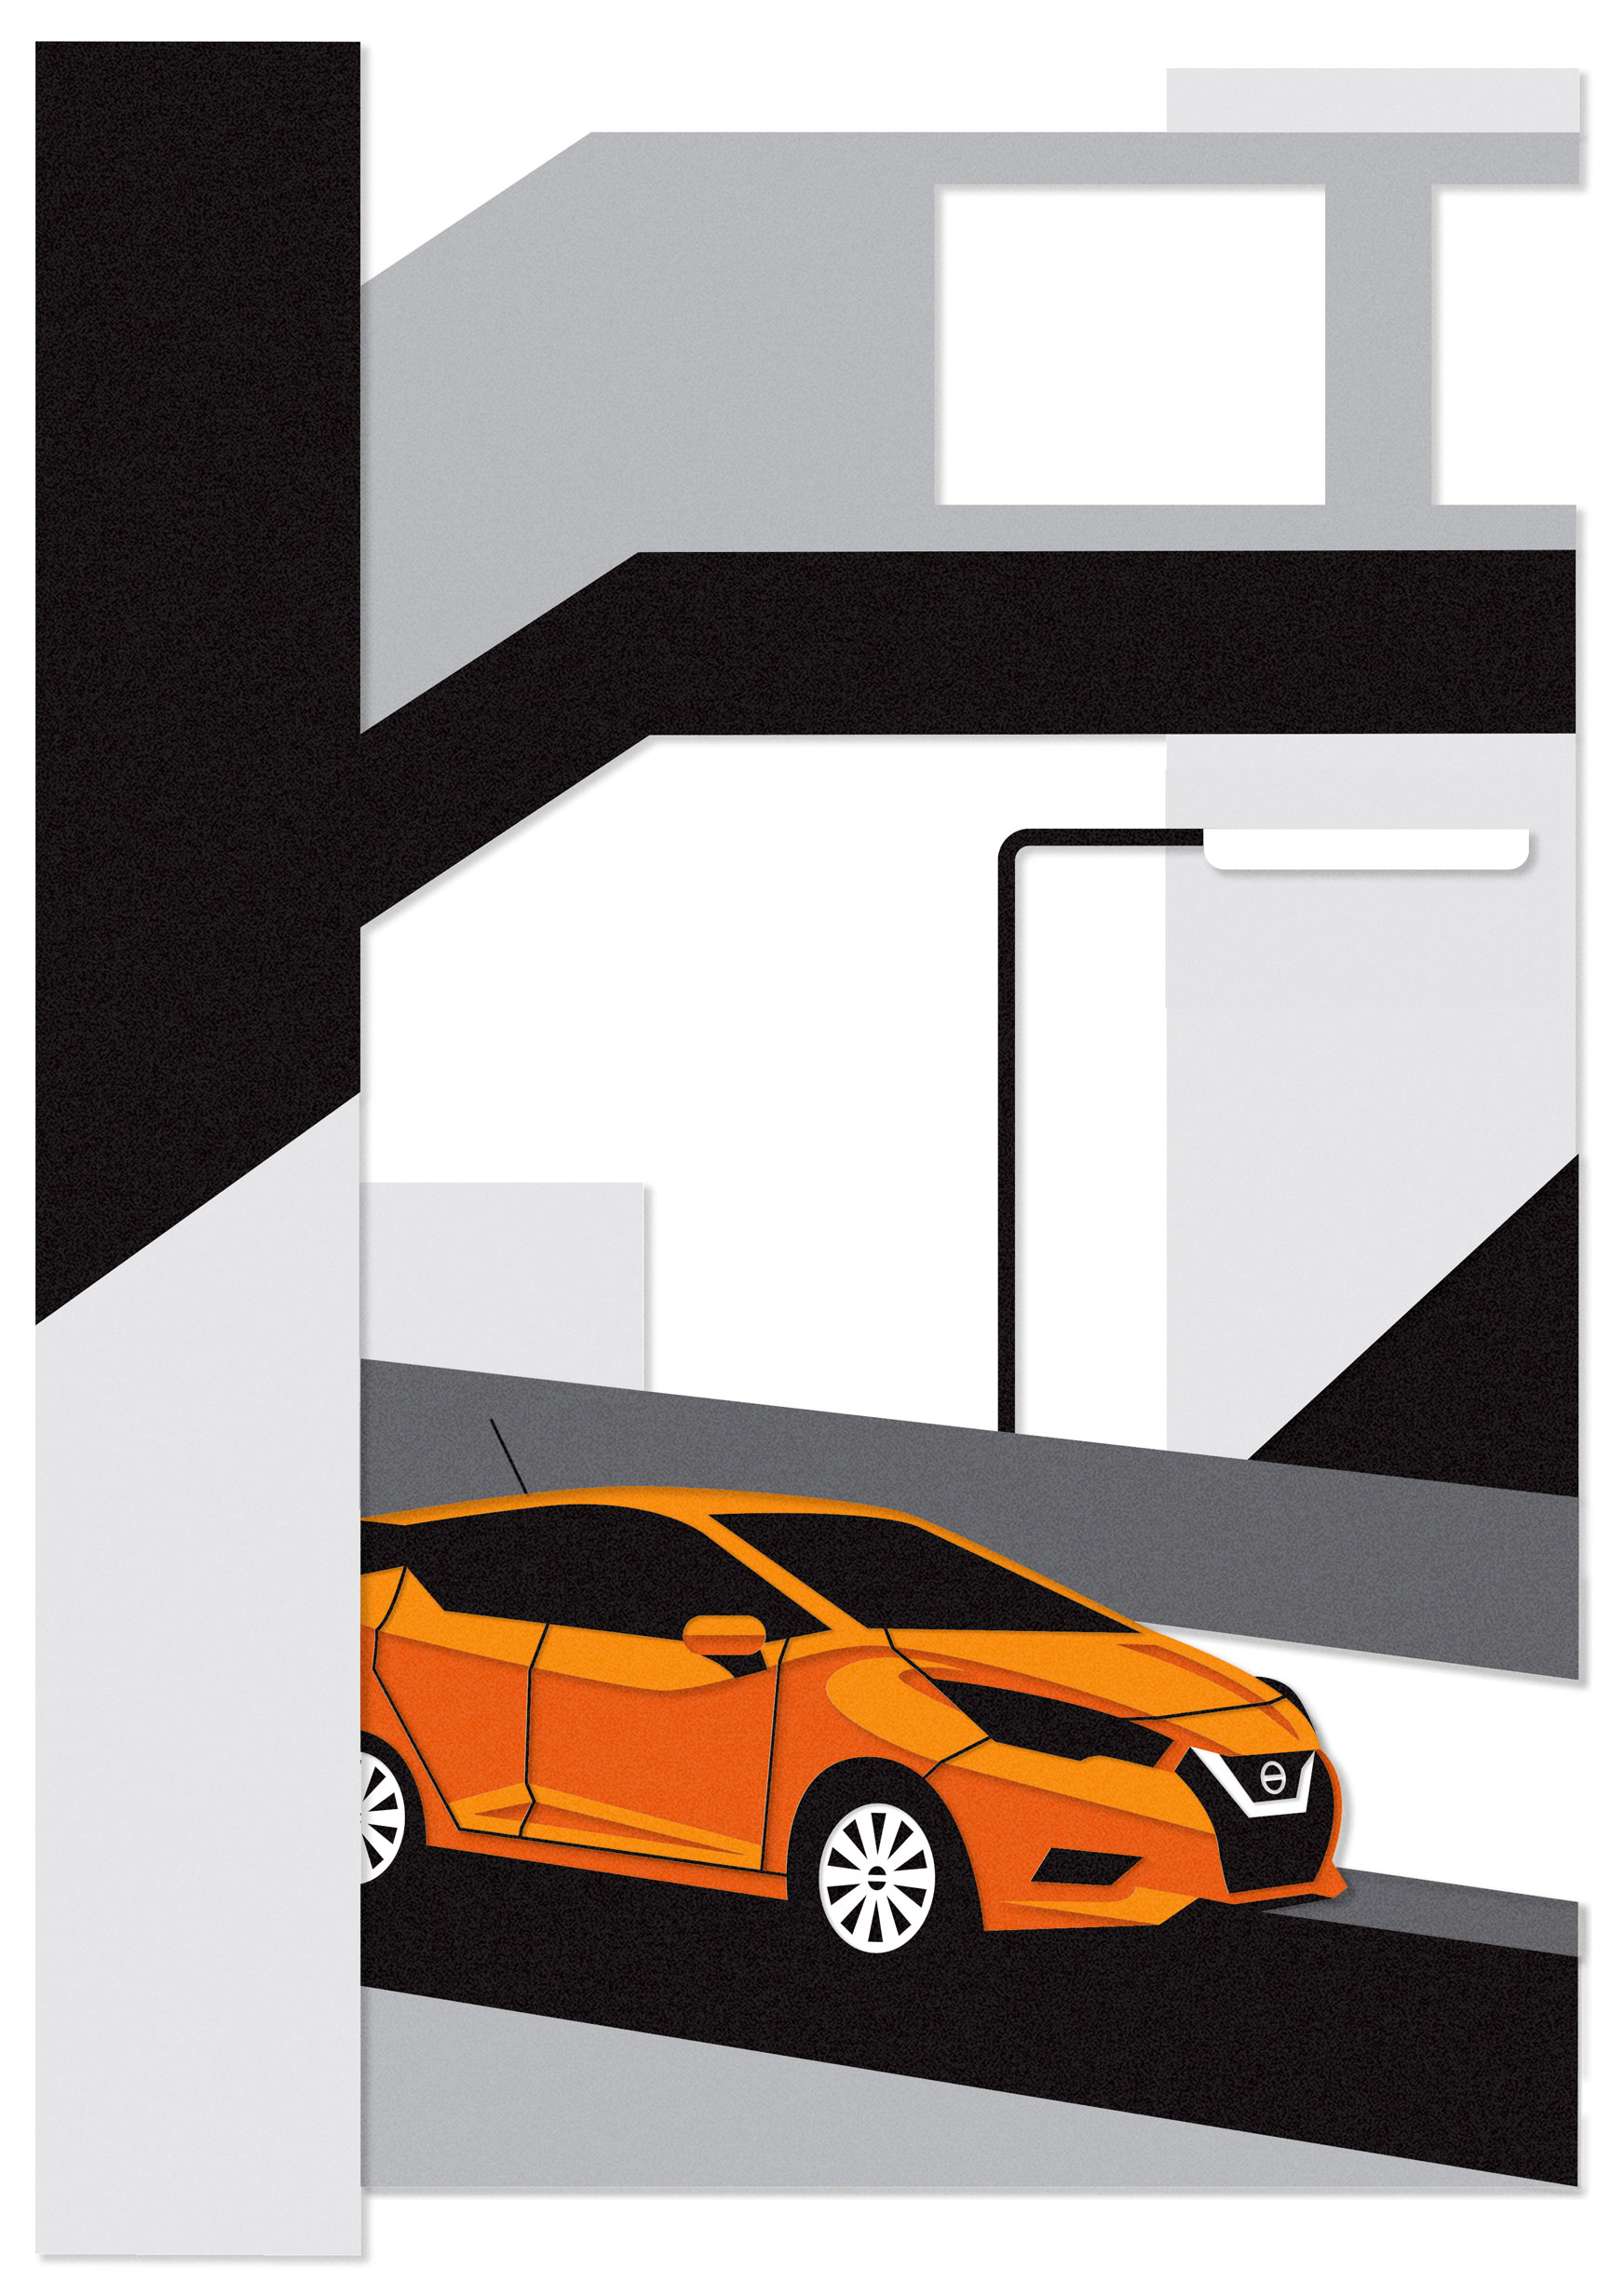 dale edwin murray freelance illustrator nissan illustration